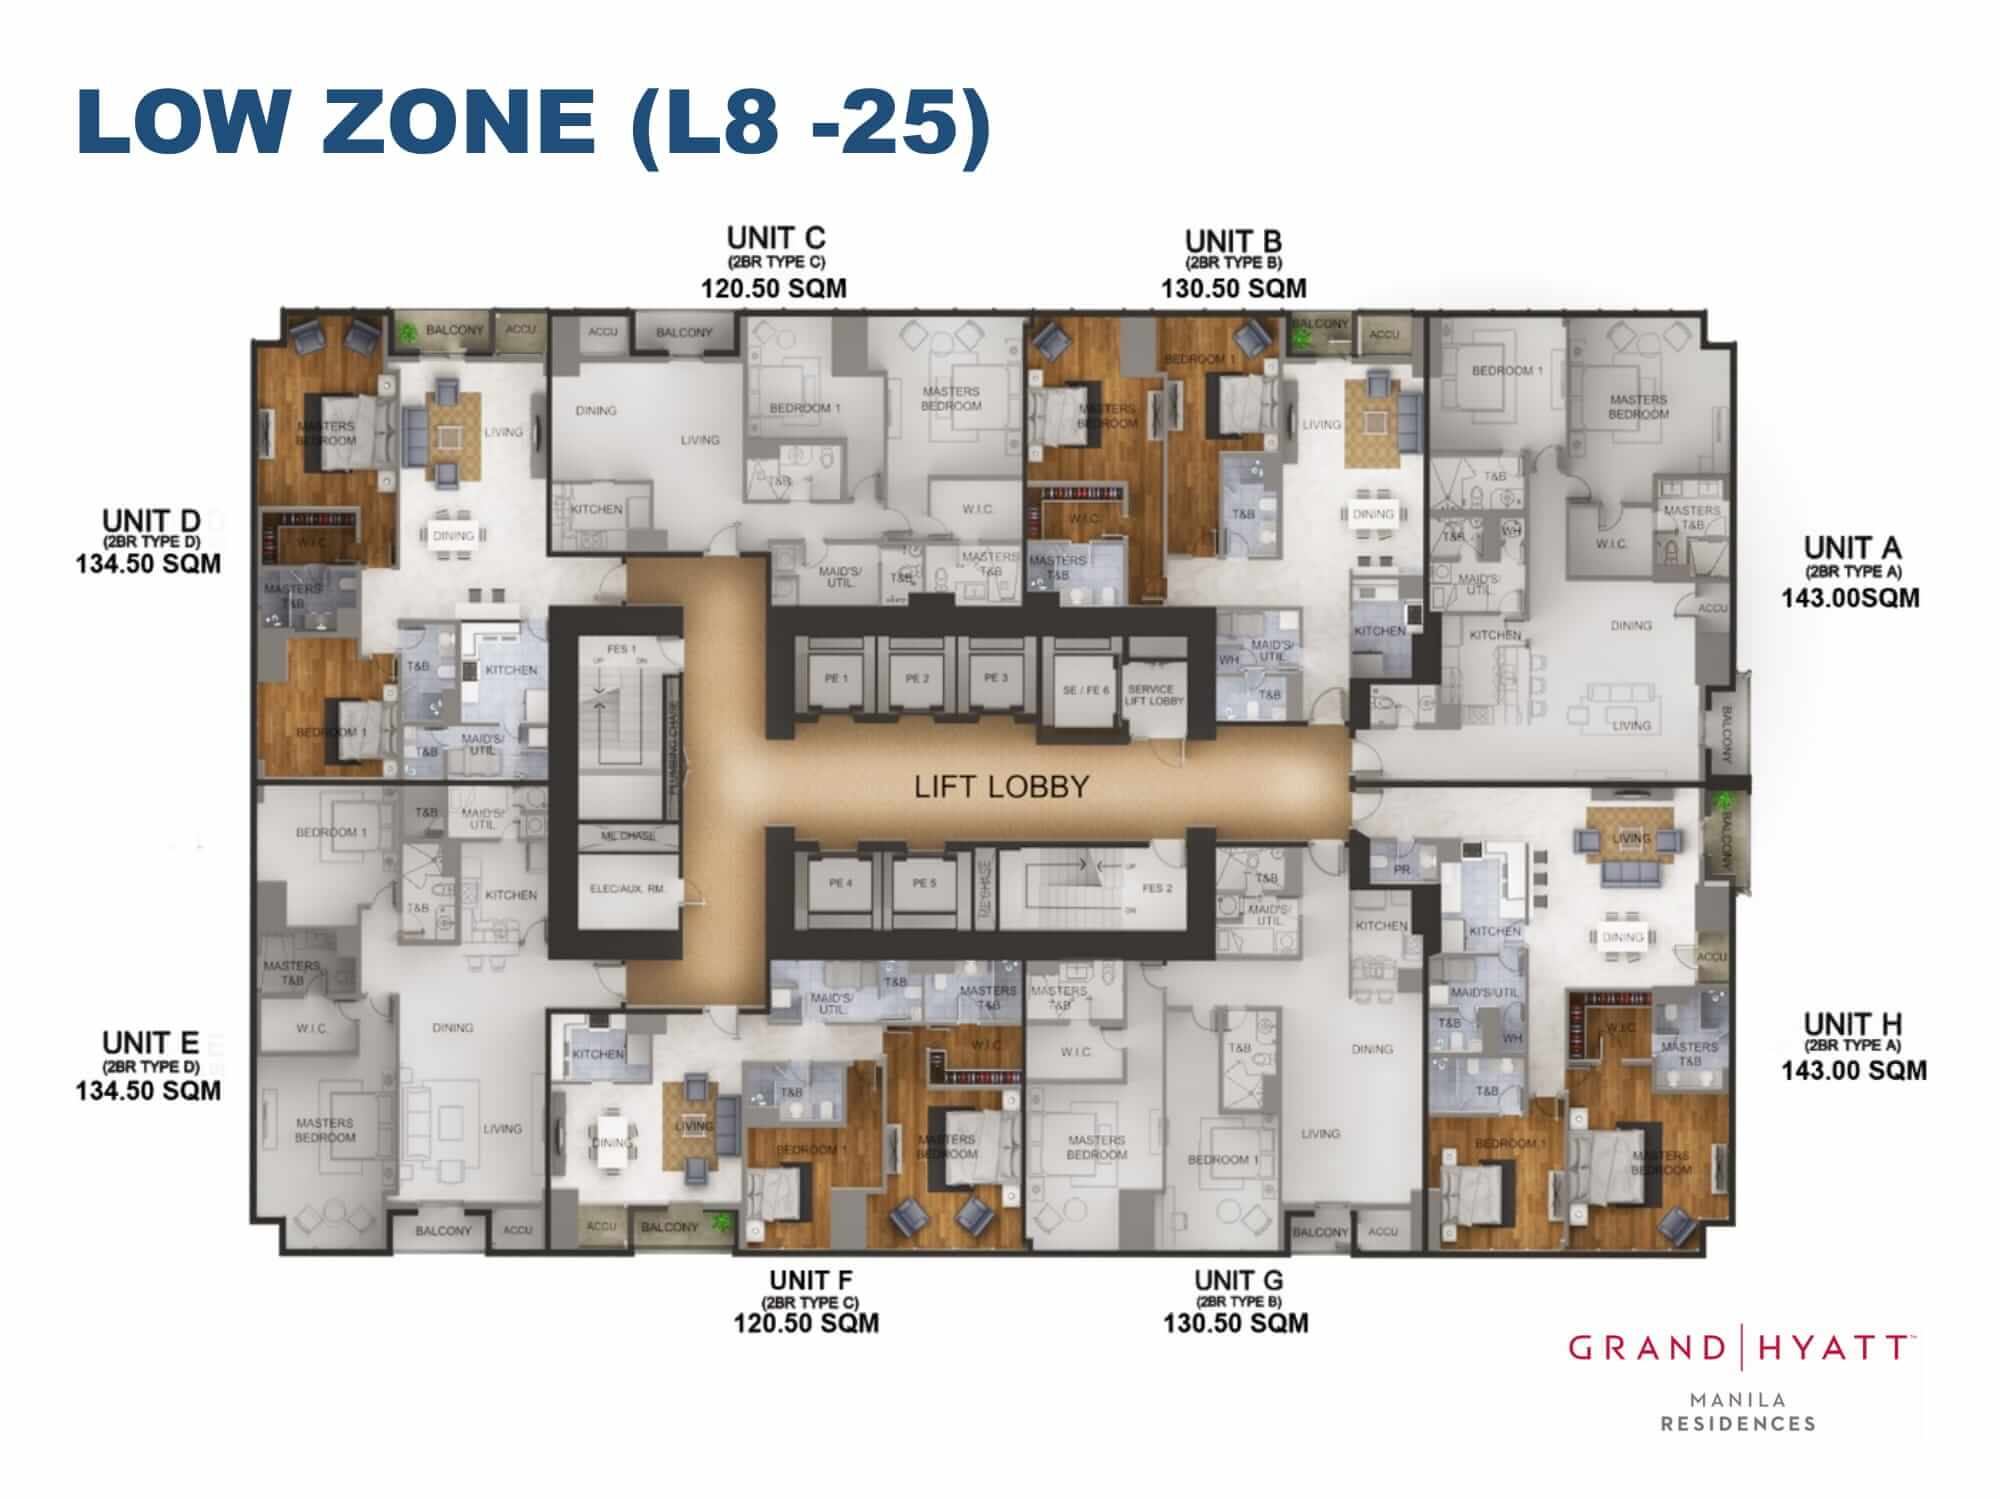 LOW ZONE L8-25 - GRAND HYATT RESIDENCES GOLD TOWER